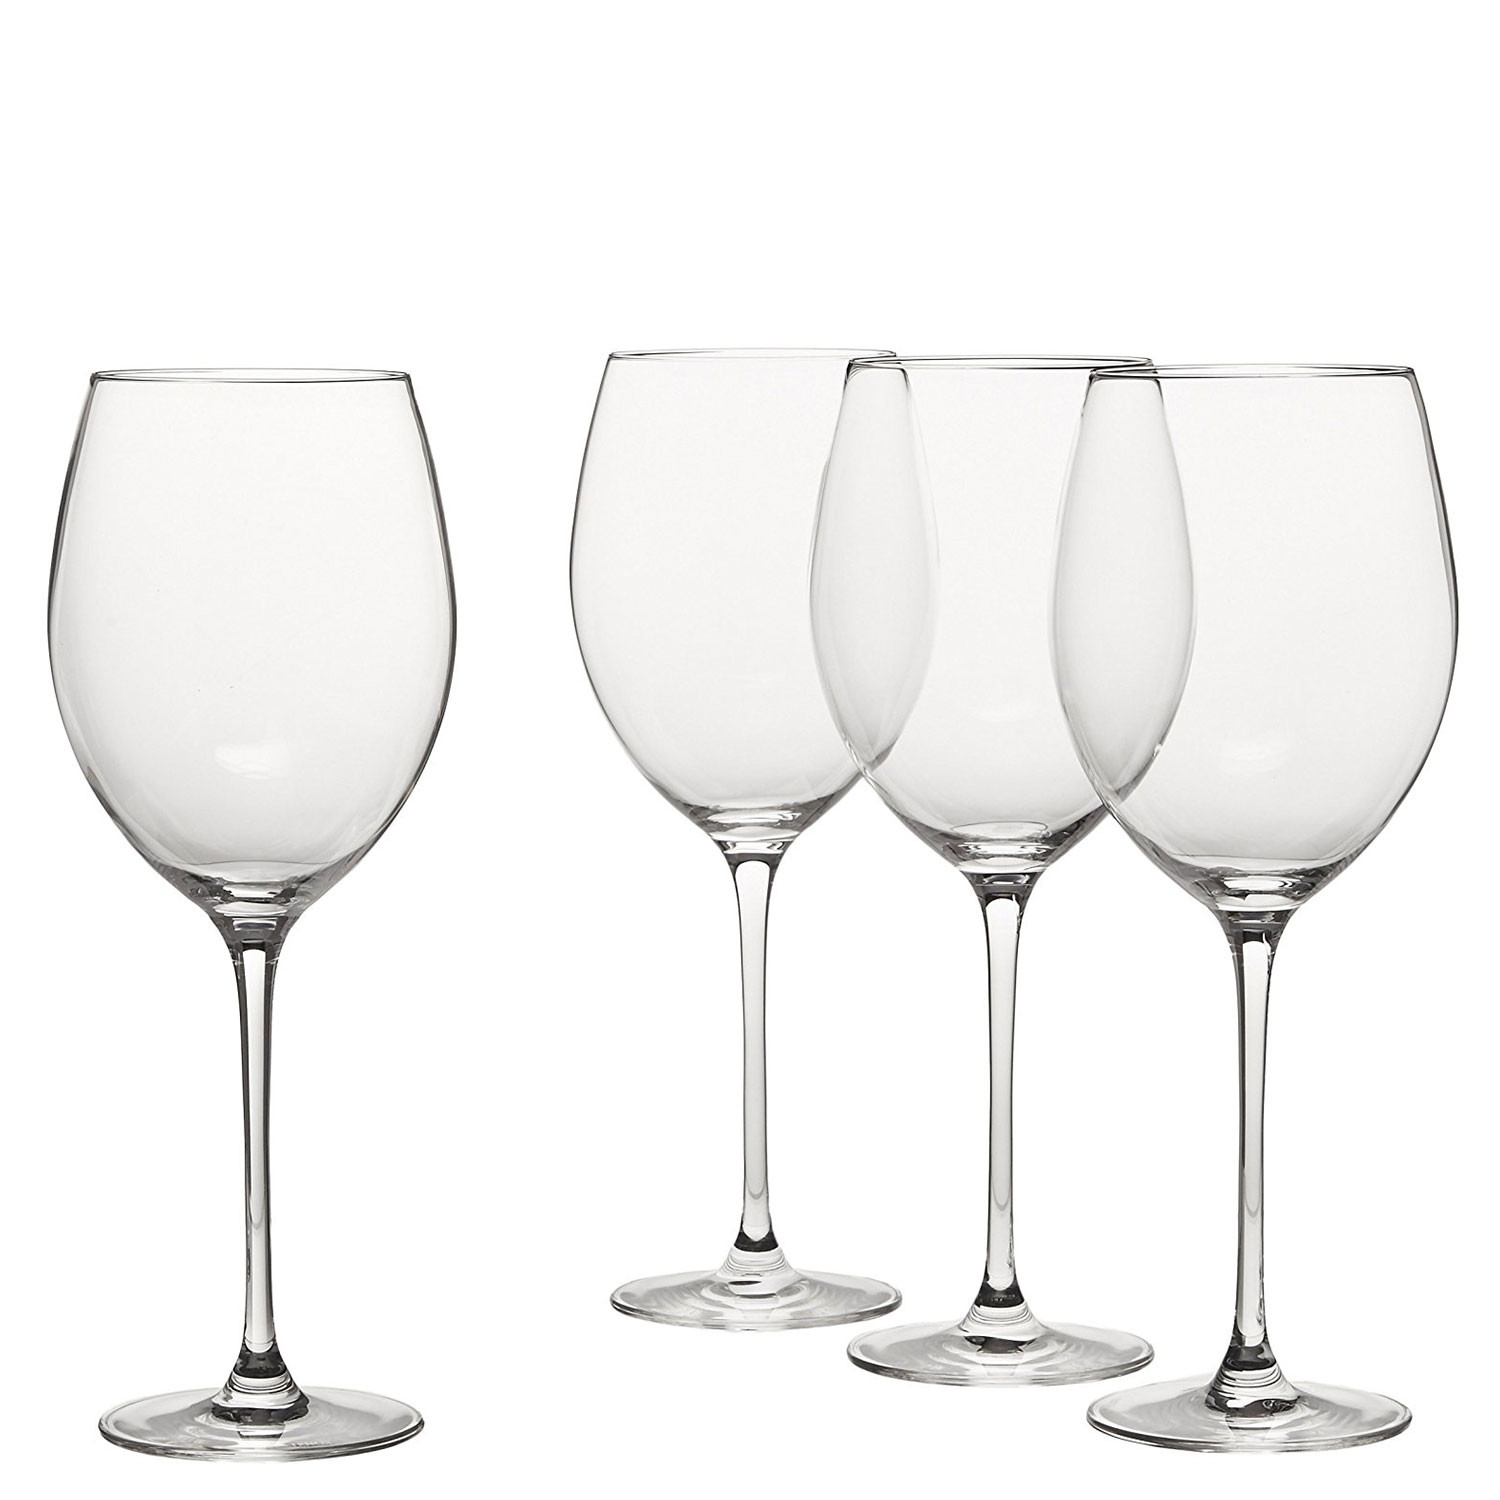 waterford lismore 8 crystal vase of stem barware william ashley china inside grand bordeaux wine glass 26 5cm 800ml